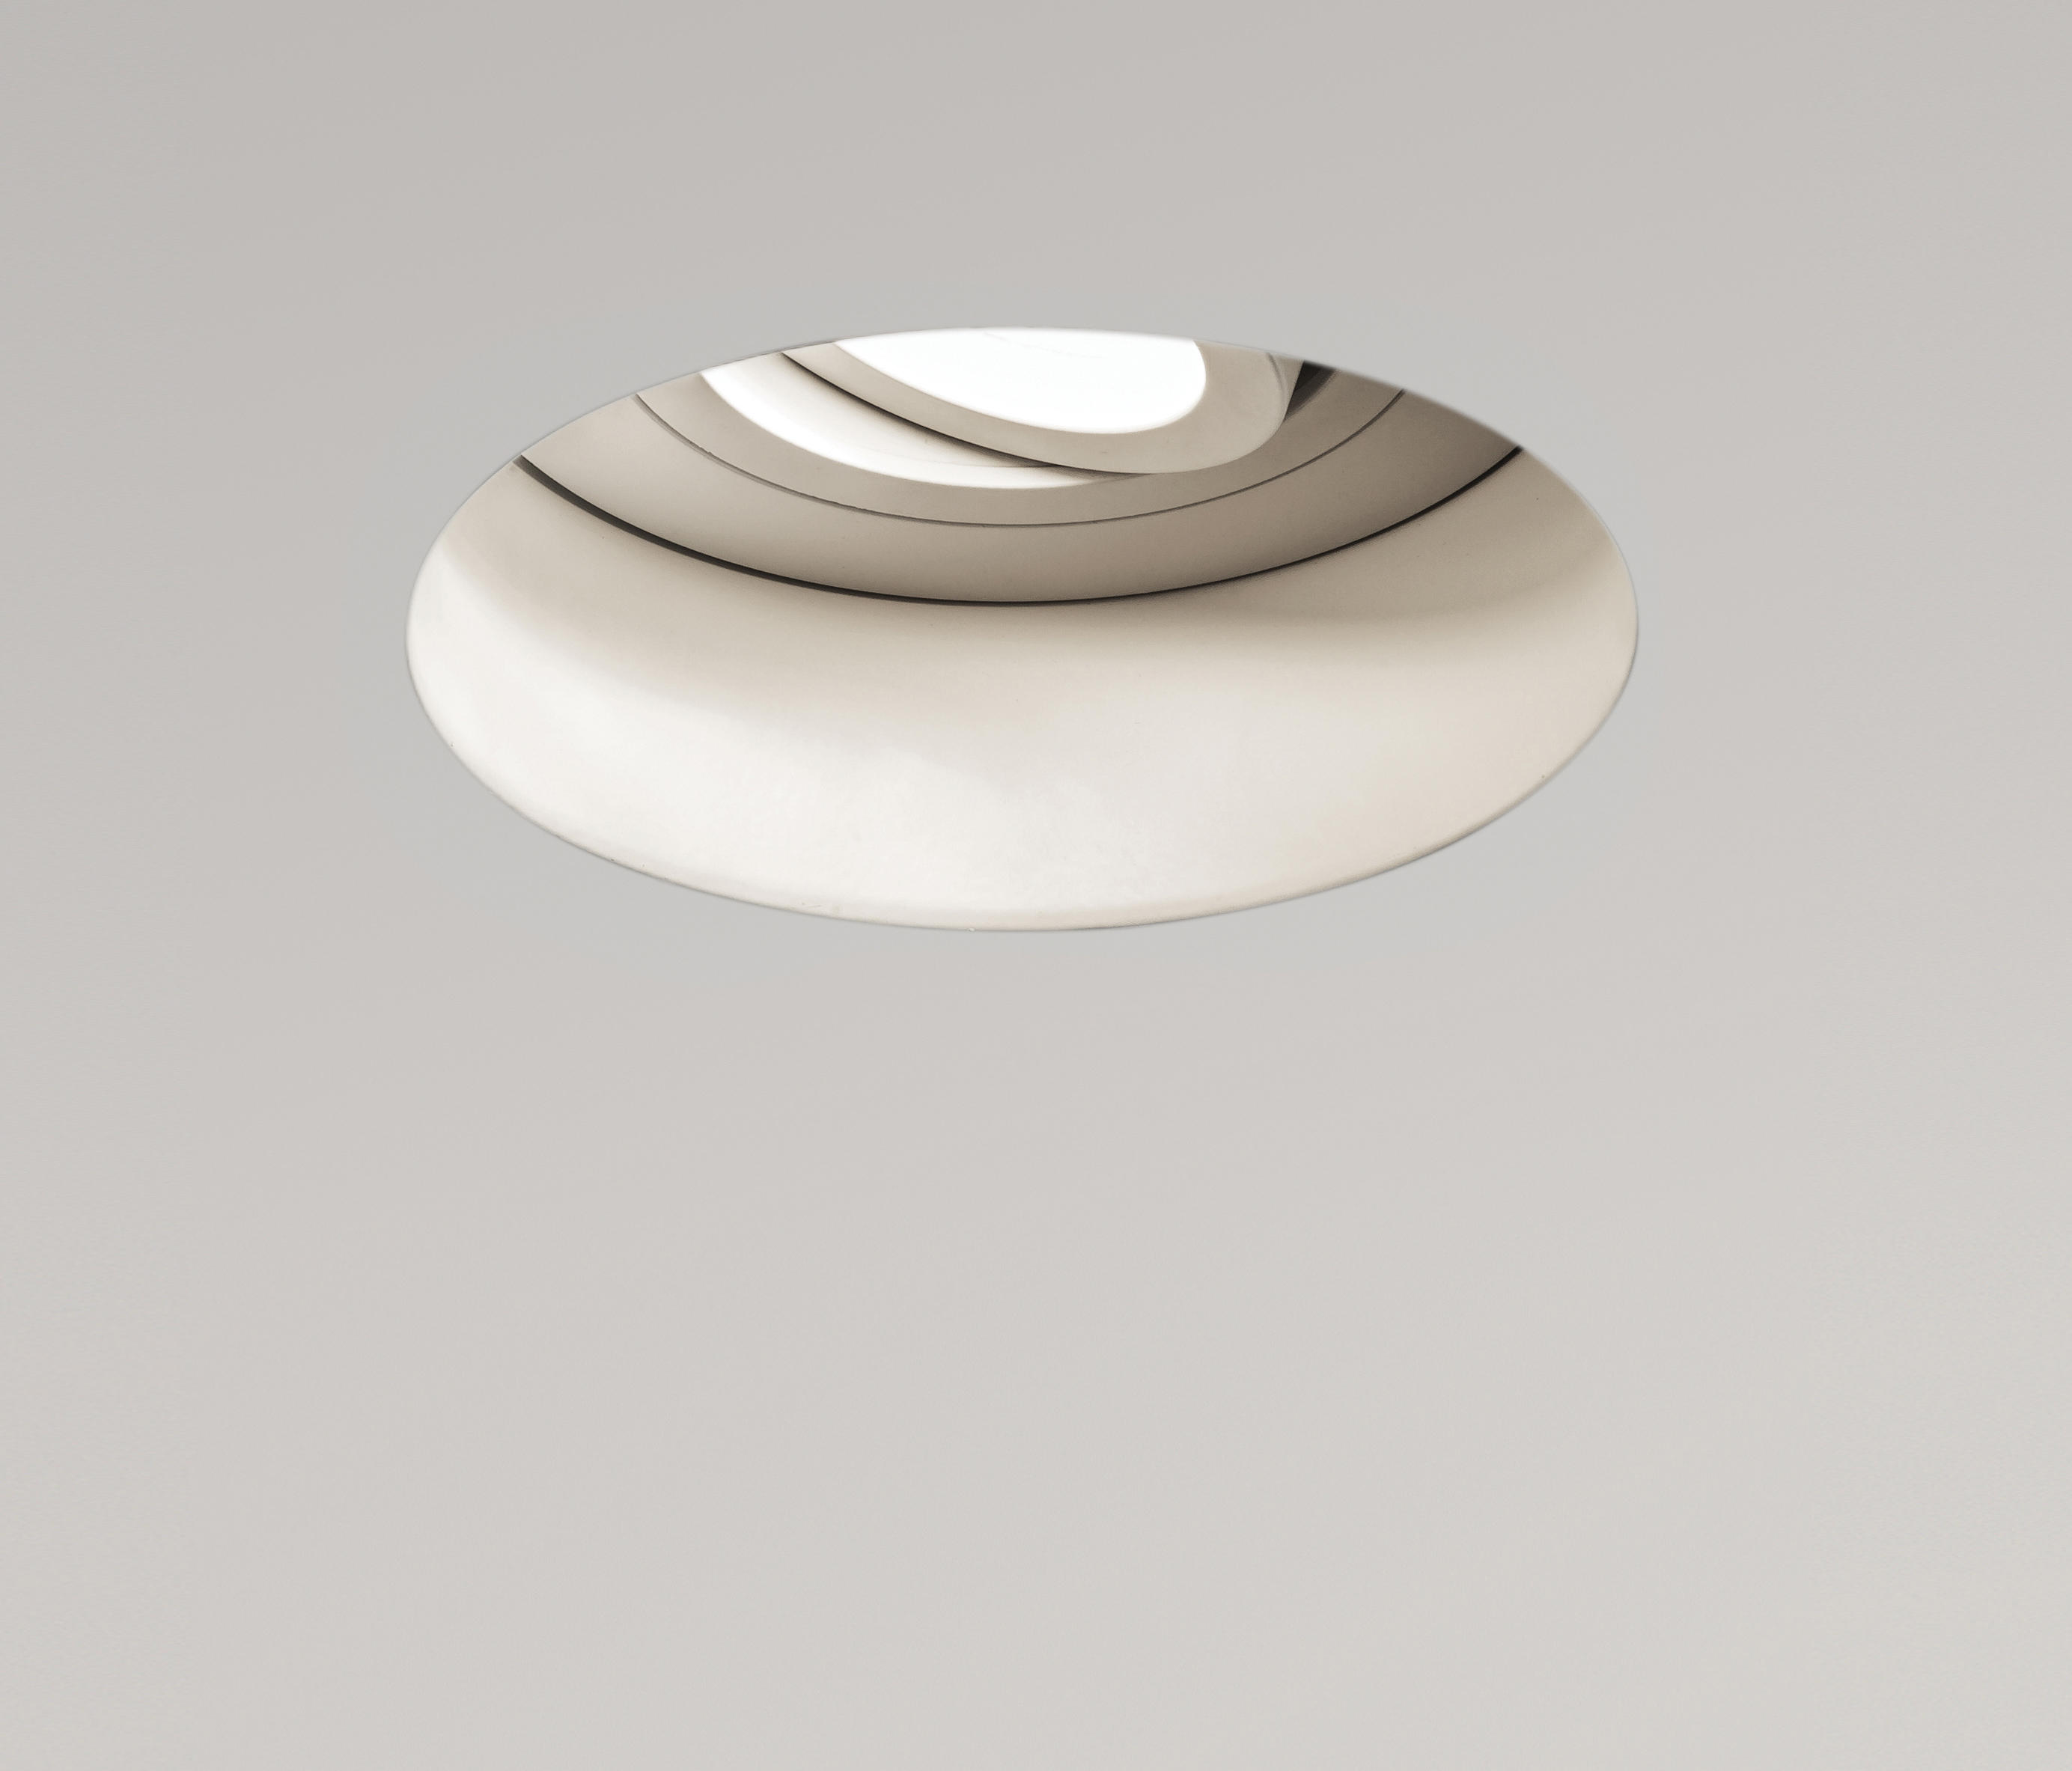 Trimless Adjule Round 230v Fire Rated Recessed Ceiling